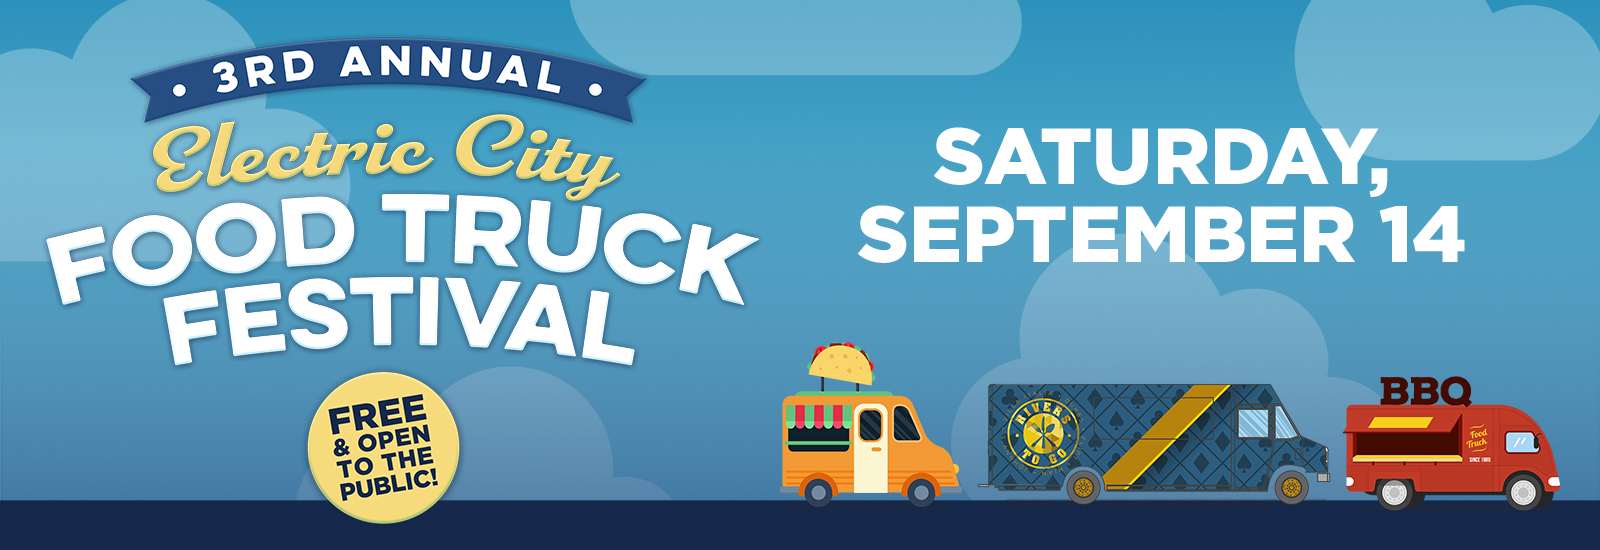 Electric City Food Truck Festival